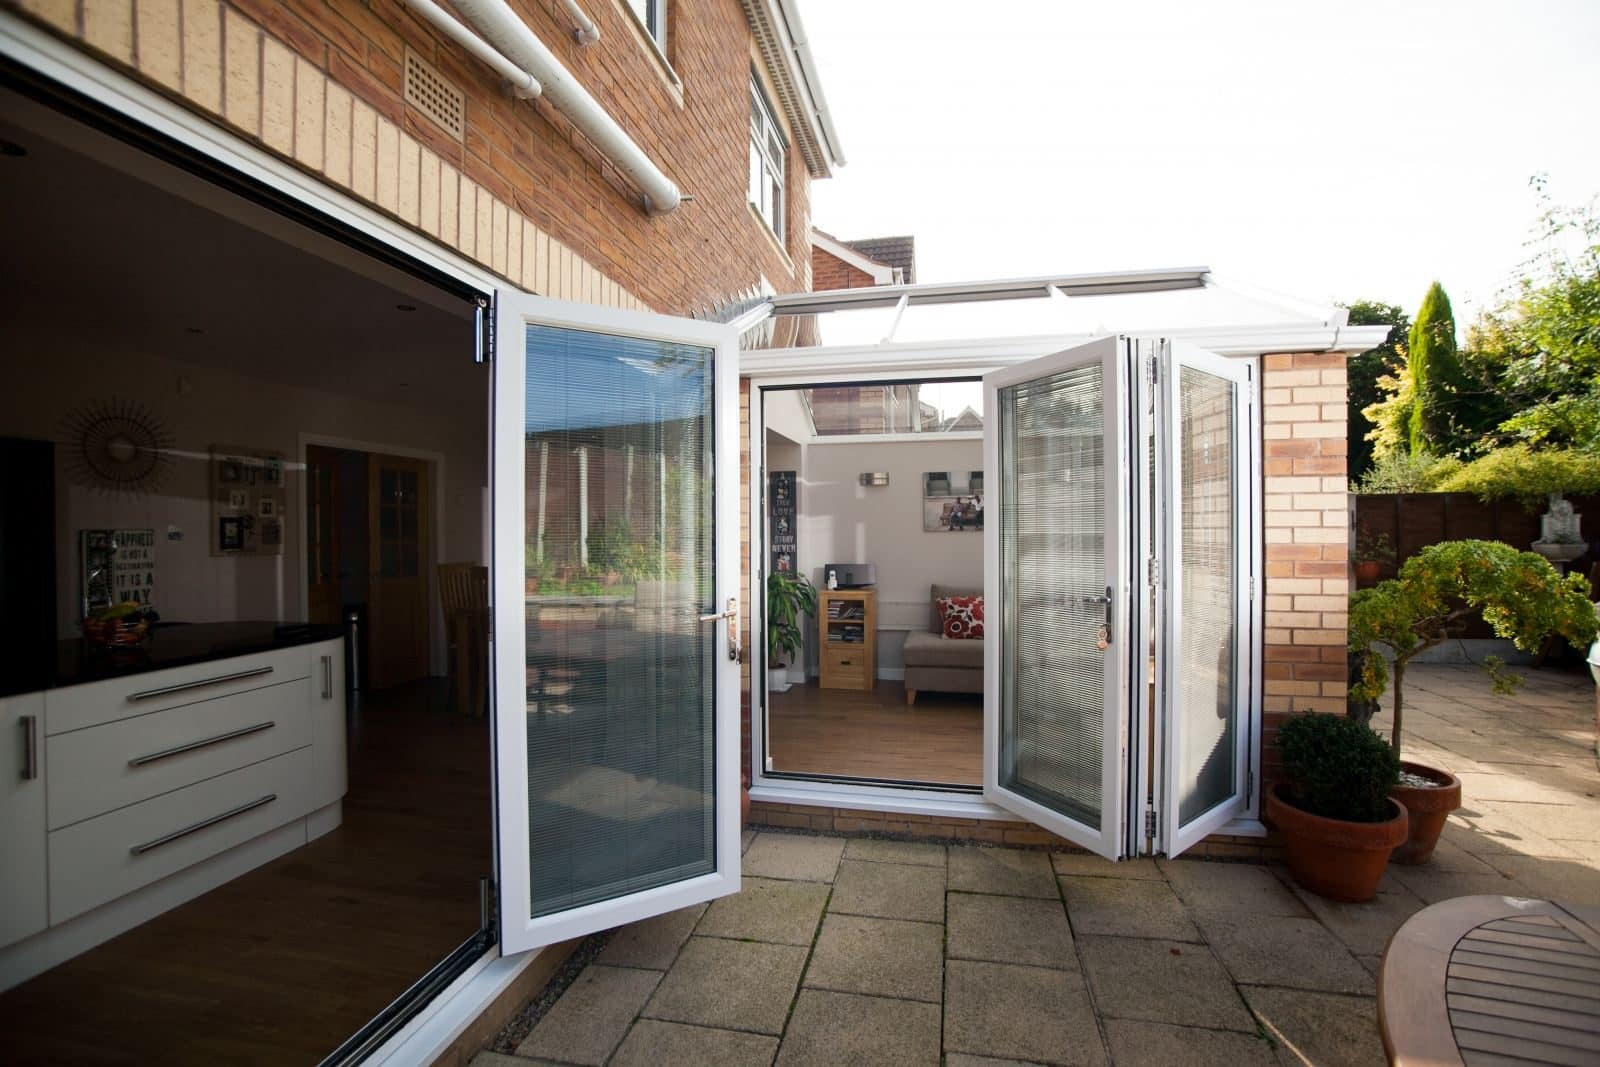 How To Make a Property More Disability-Friendly. Glass extended doors